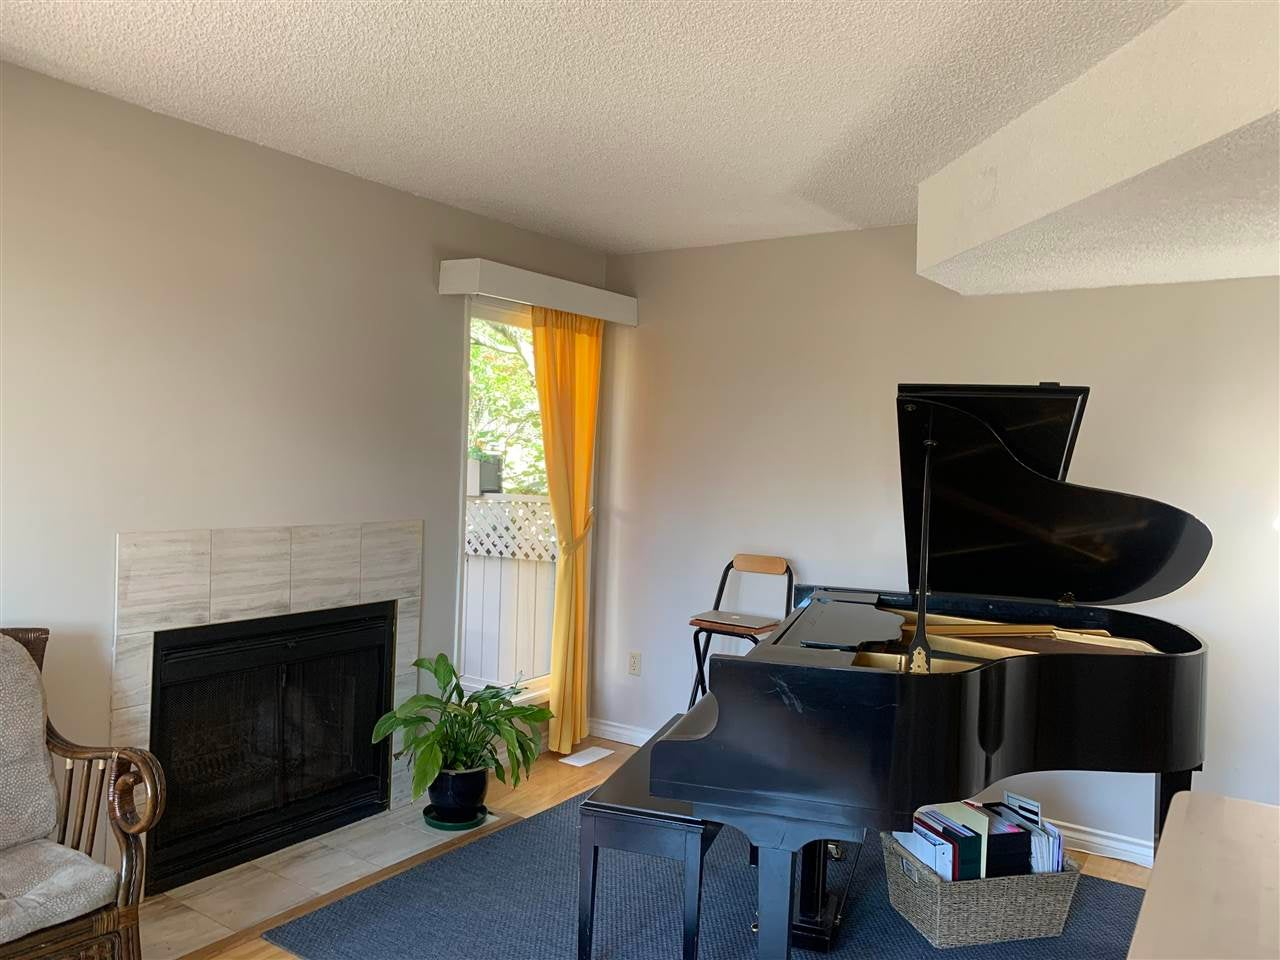 2 230 W 15TH STREET - Central Lonsdale Townhouse for sale, 3 Bedrooms (R2572749) - #8